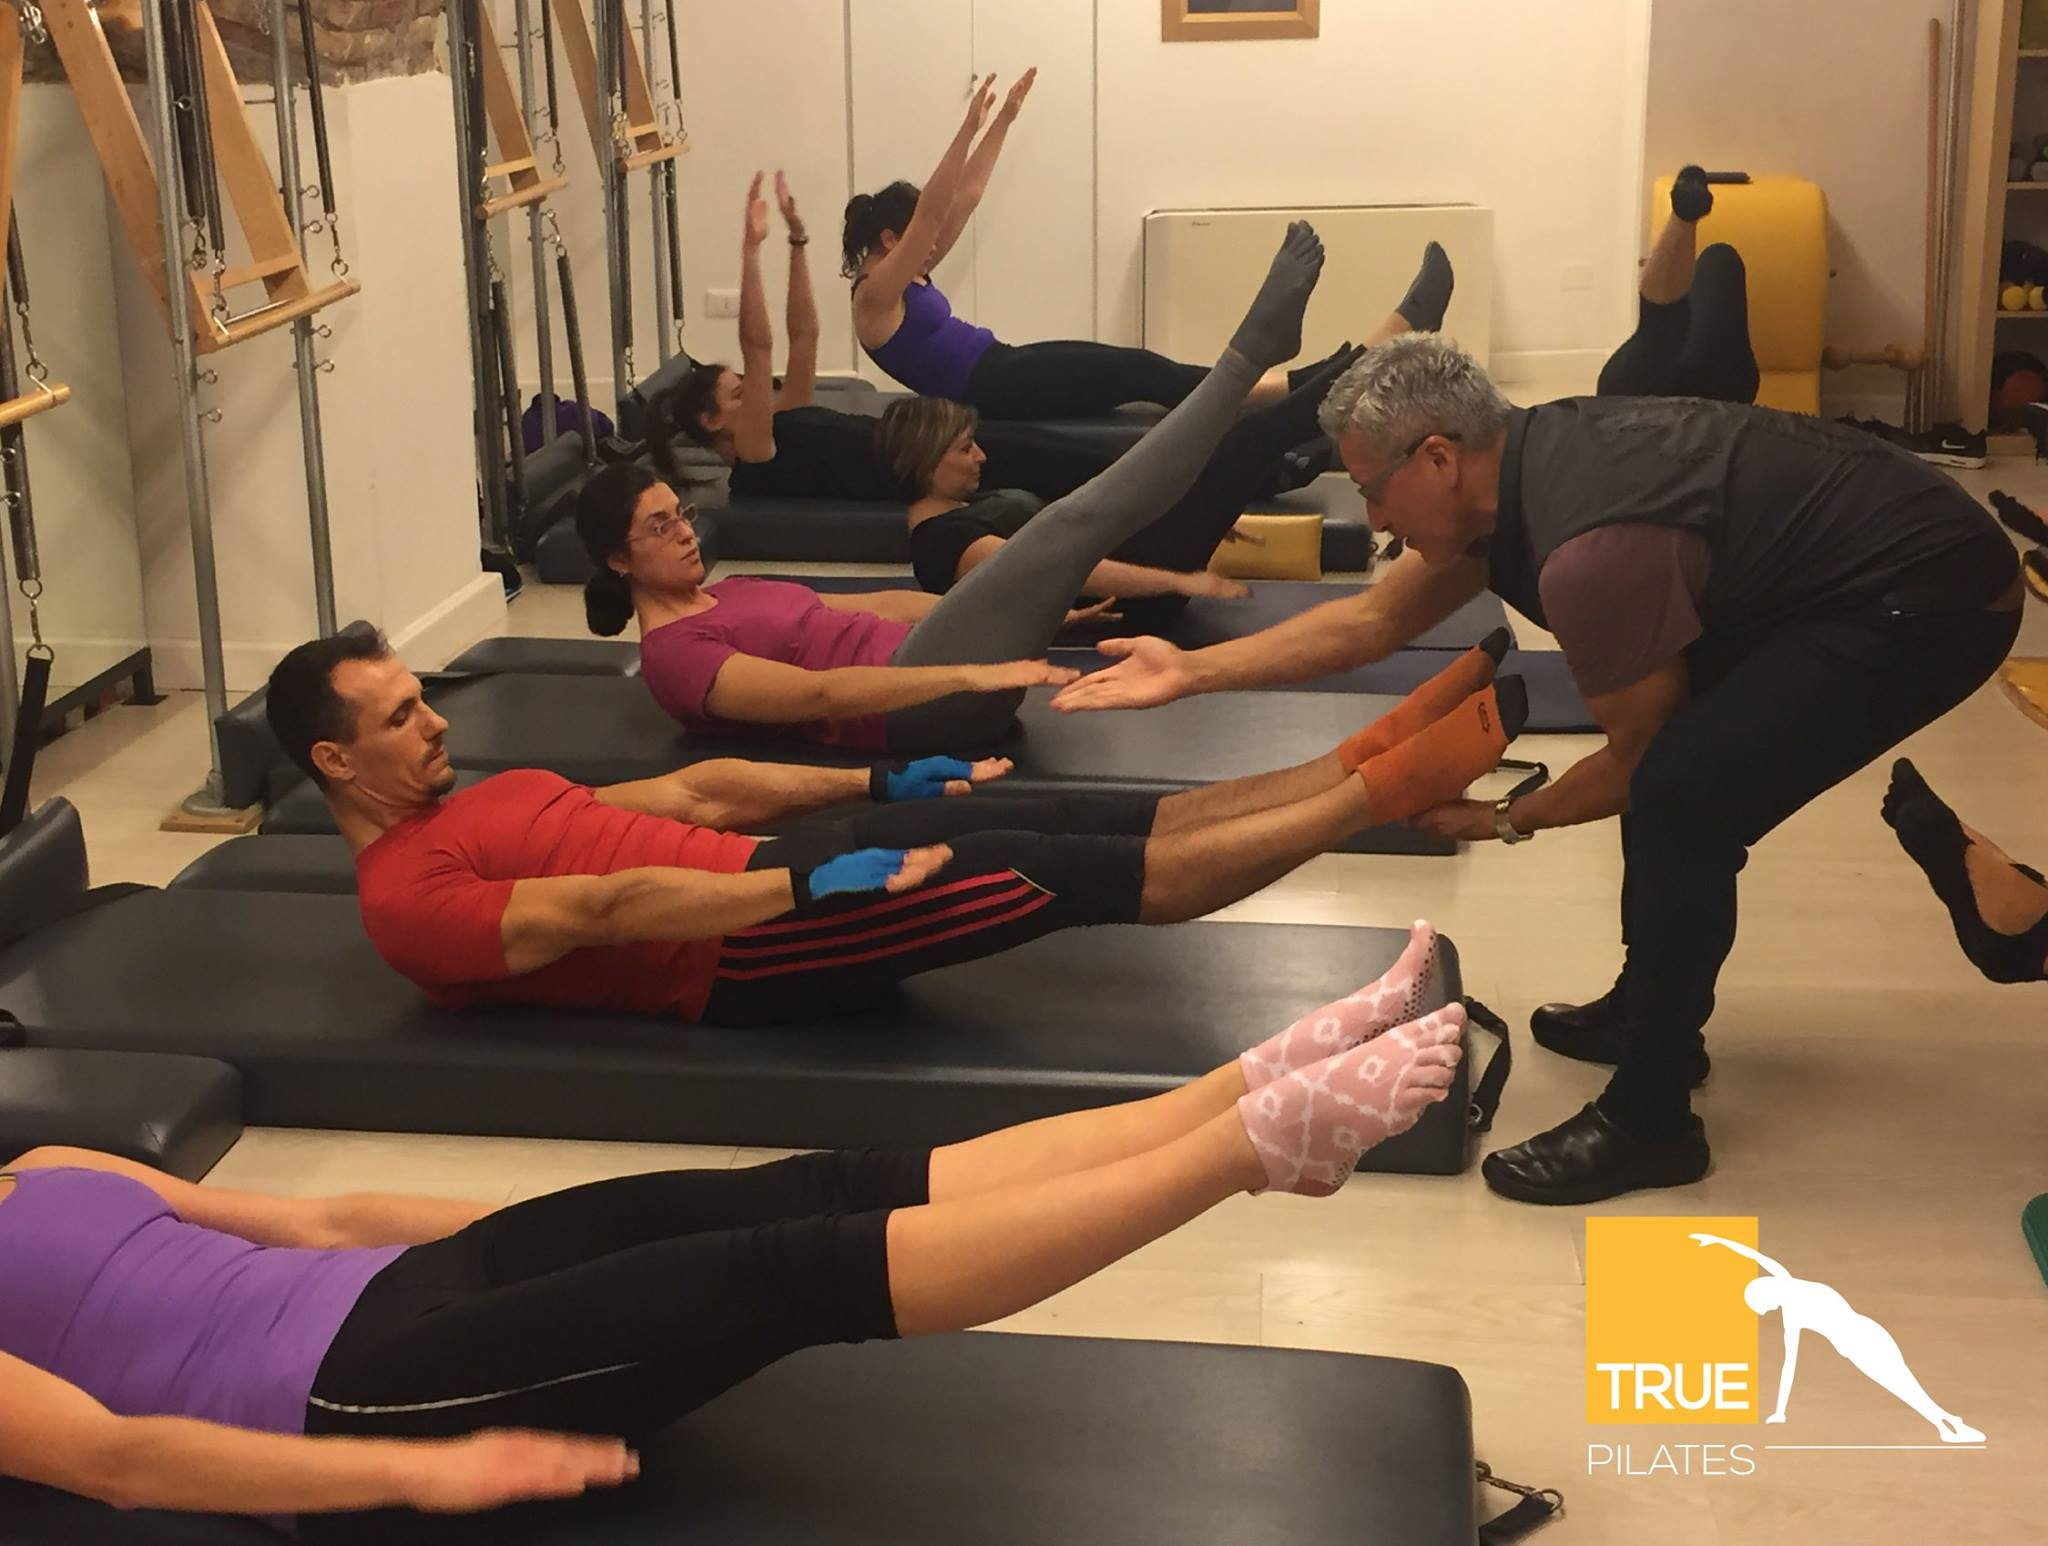 3-worshop-pilates-con-moses-urbano-working-with-different-body-types.jpg